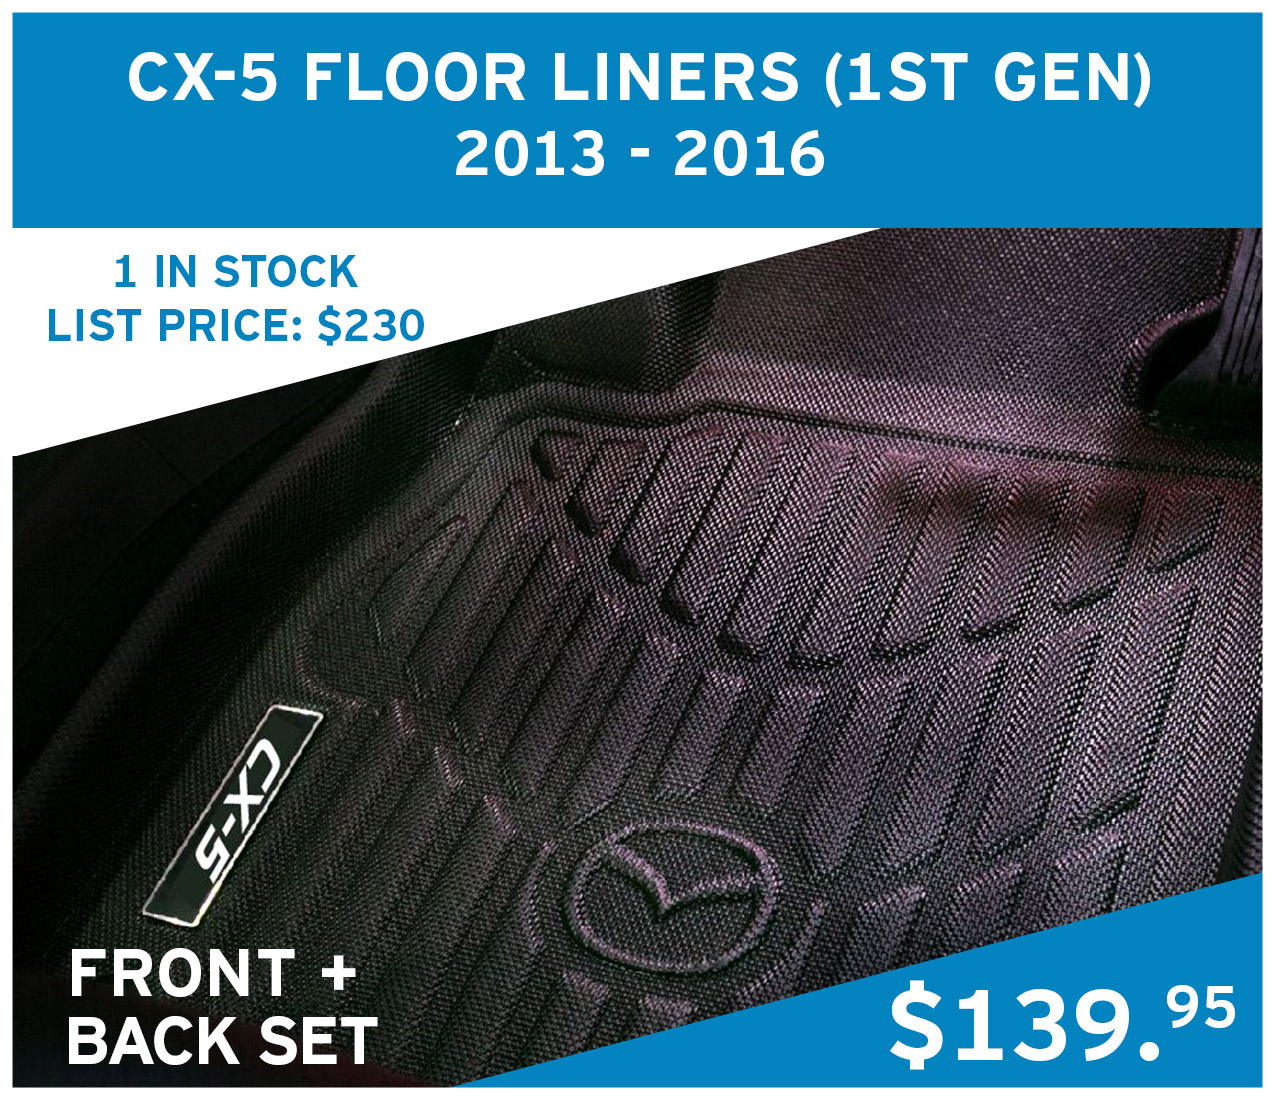 2x CX-5 Floor Liners (1st Gen) for 2013 - 2016 vehicles at $139.95